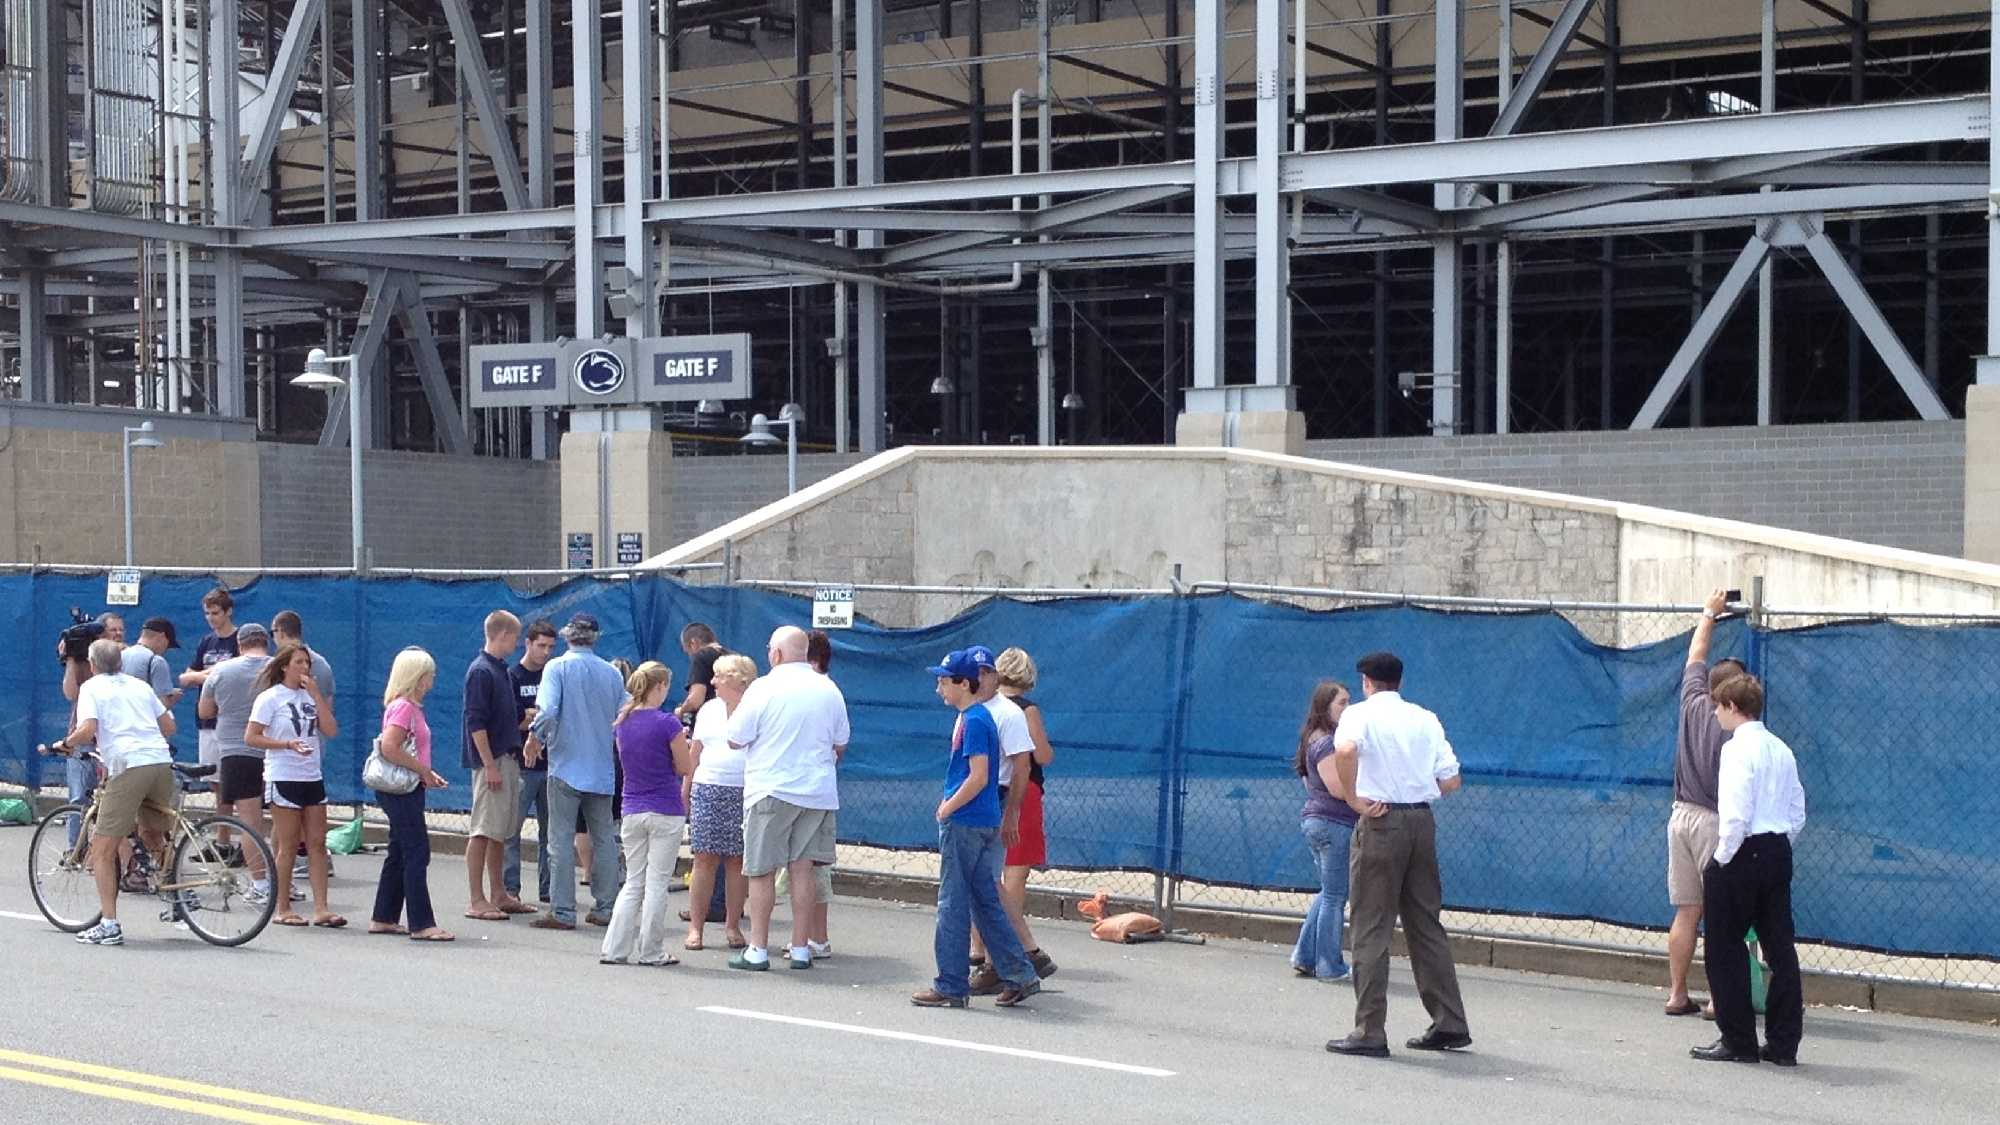 A crowd gathered around the spot where a statue of Joe Paterno stood for years outside Beaver Stadium on the Penn State University campus.